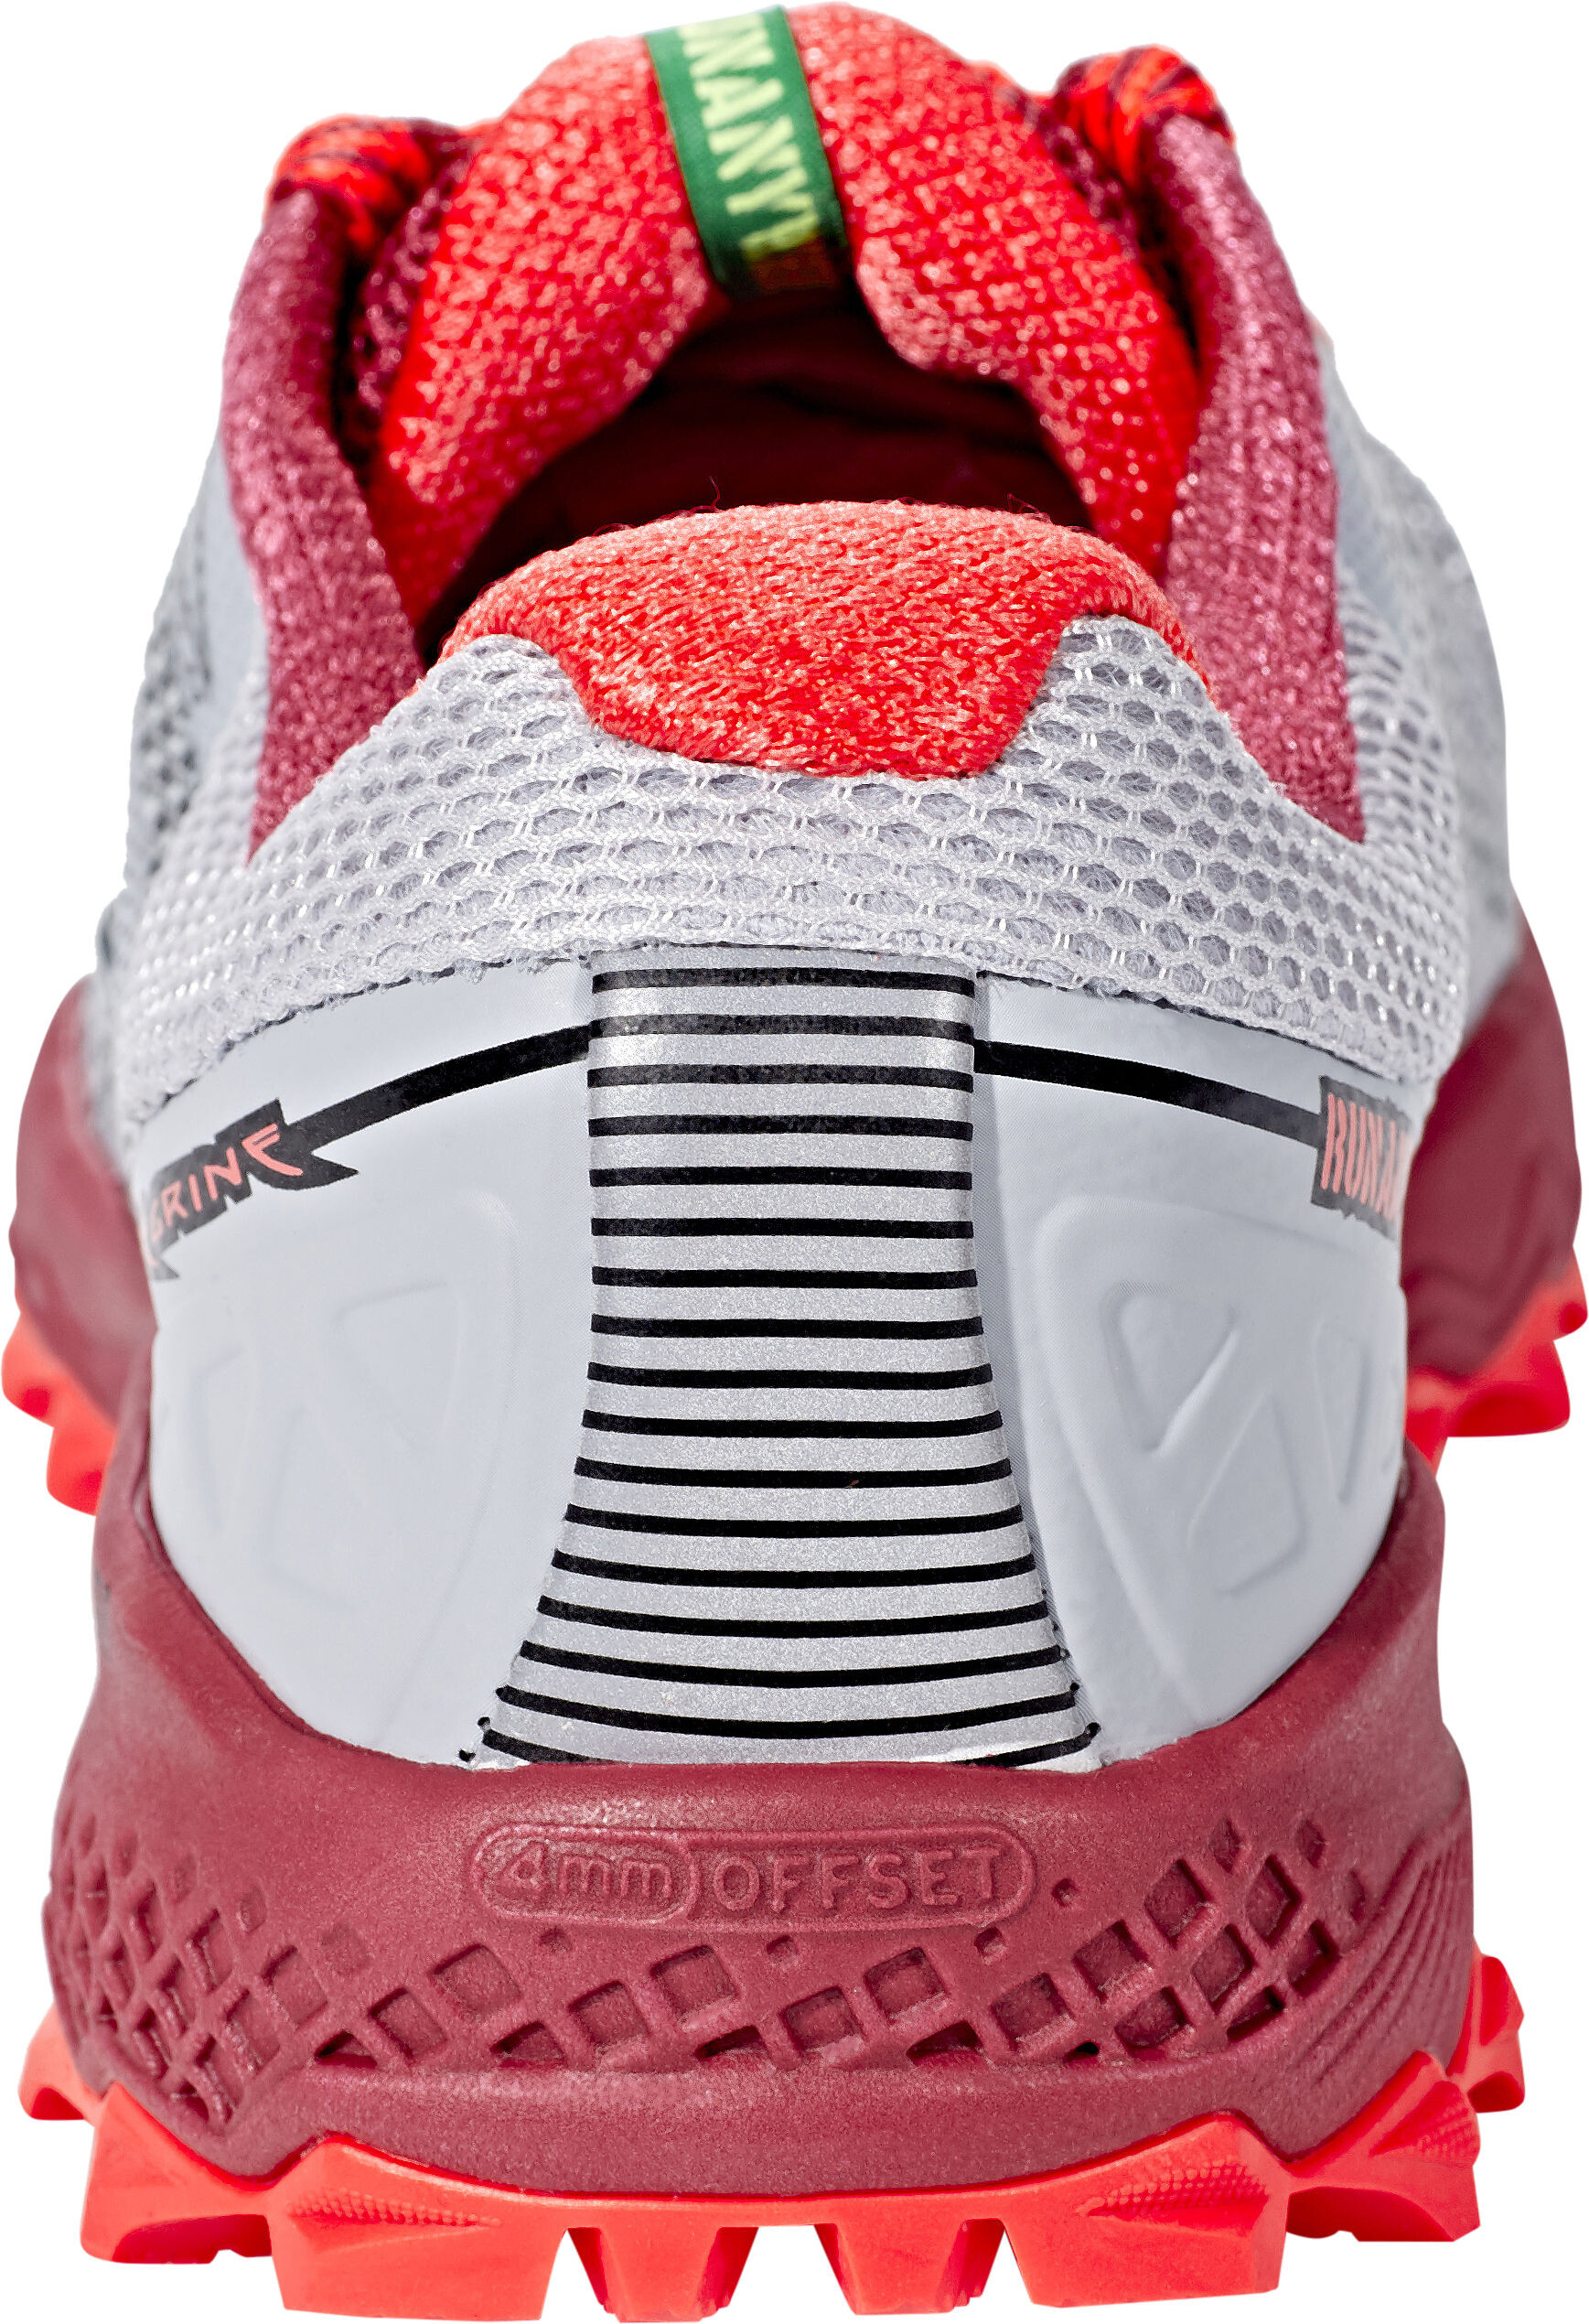 8f722abf585 saucony Peregrine 7 - Chaussures running Femme - gris rouge ...